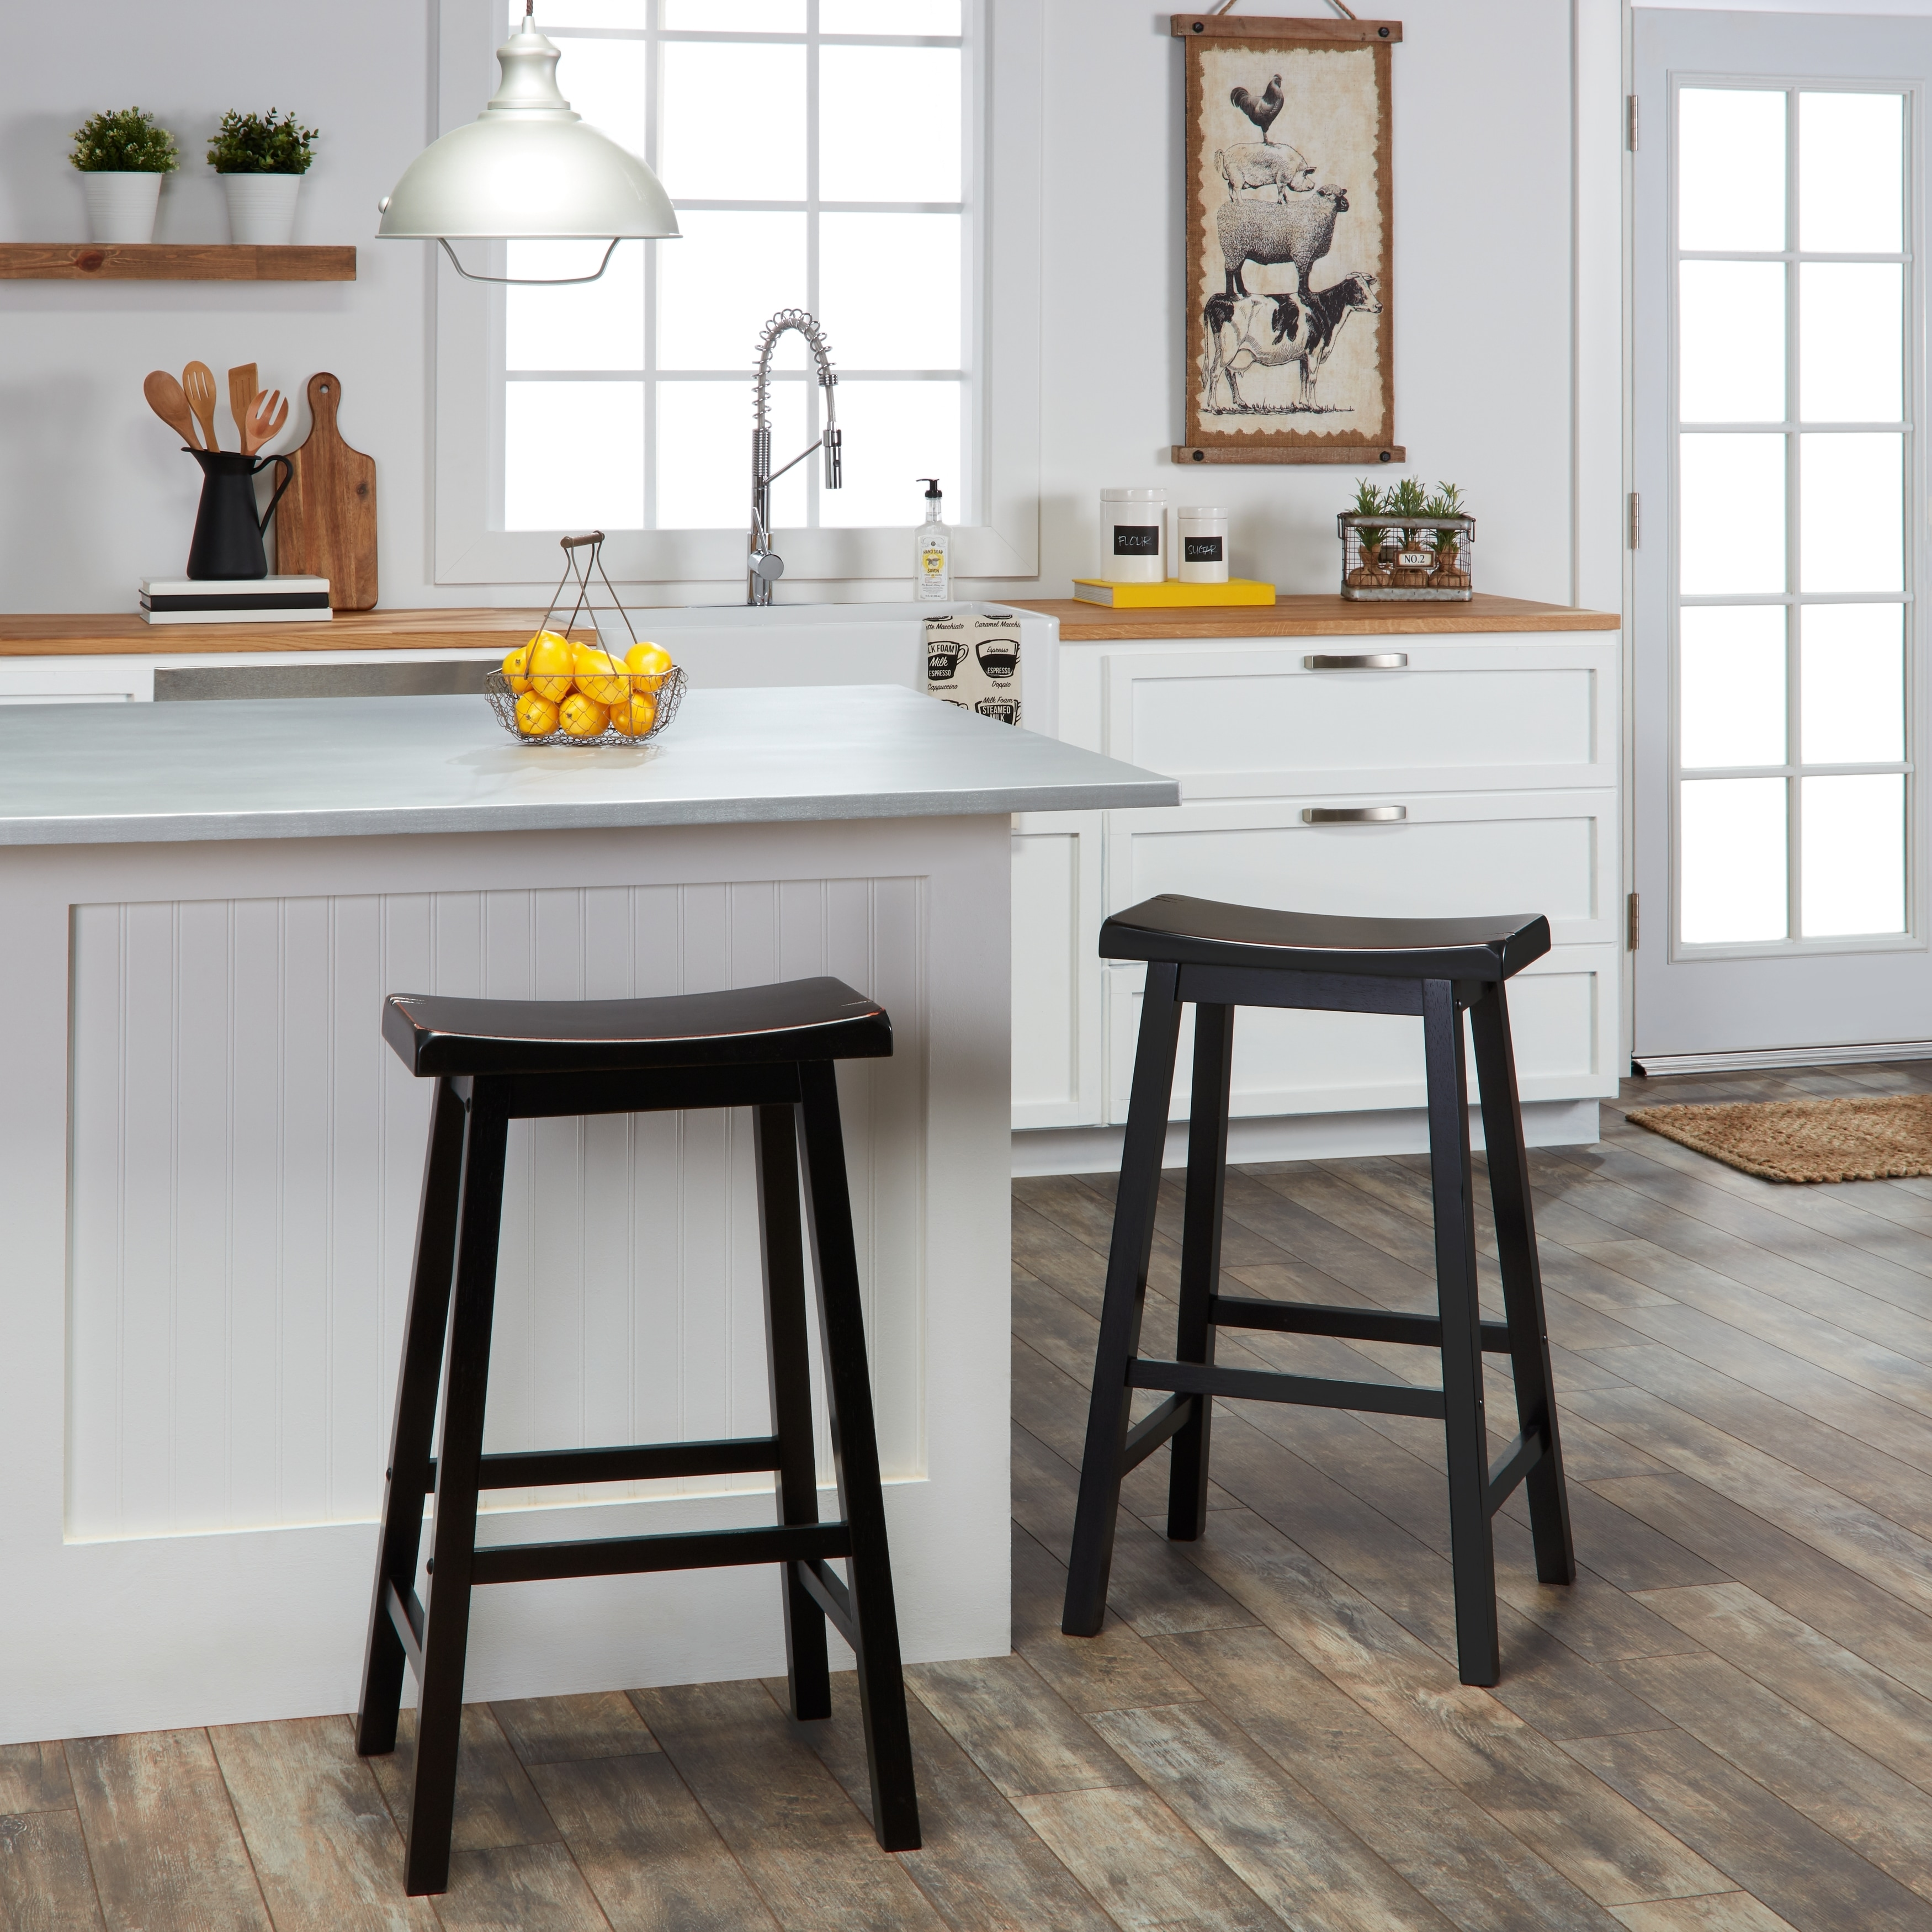 Shop salvador saddle 29 inch counter height backless stools set of 2 by inspire q bold on sale free shipping today overstock com 5108785